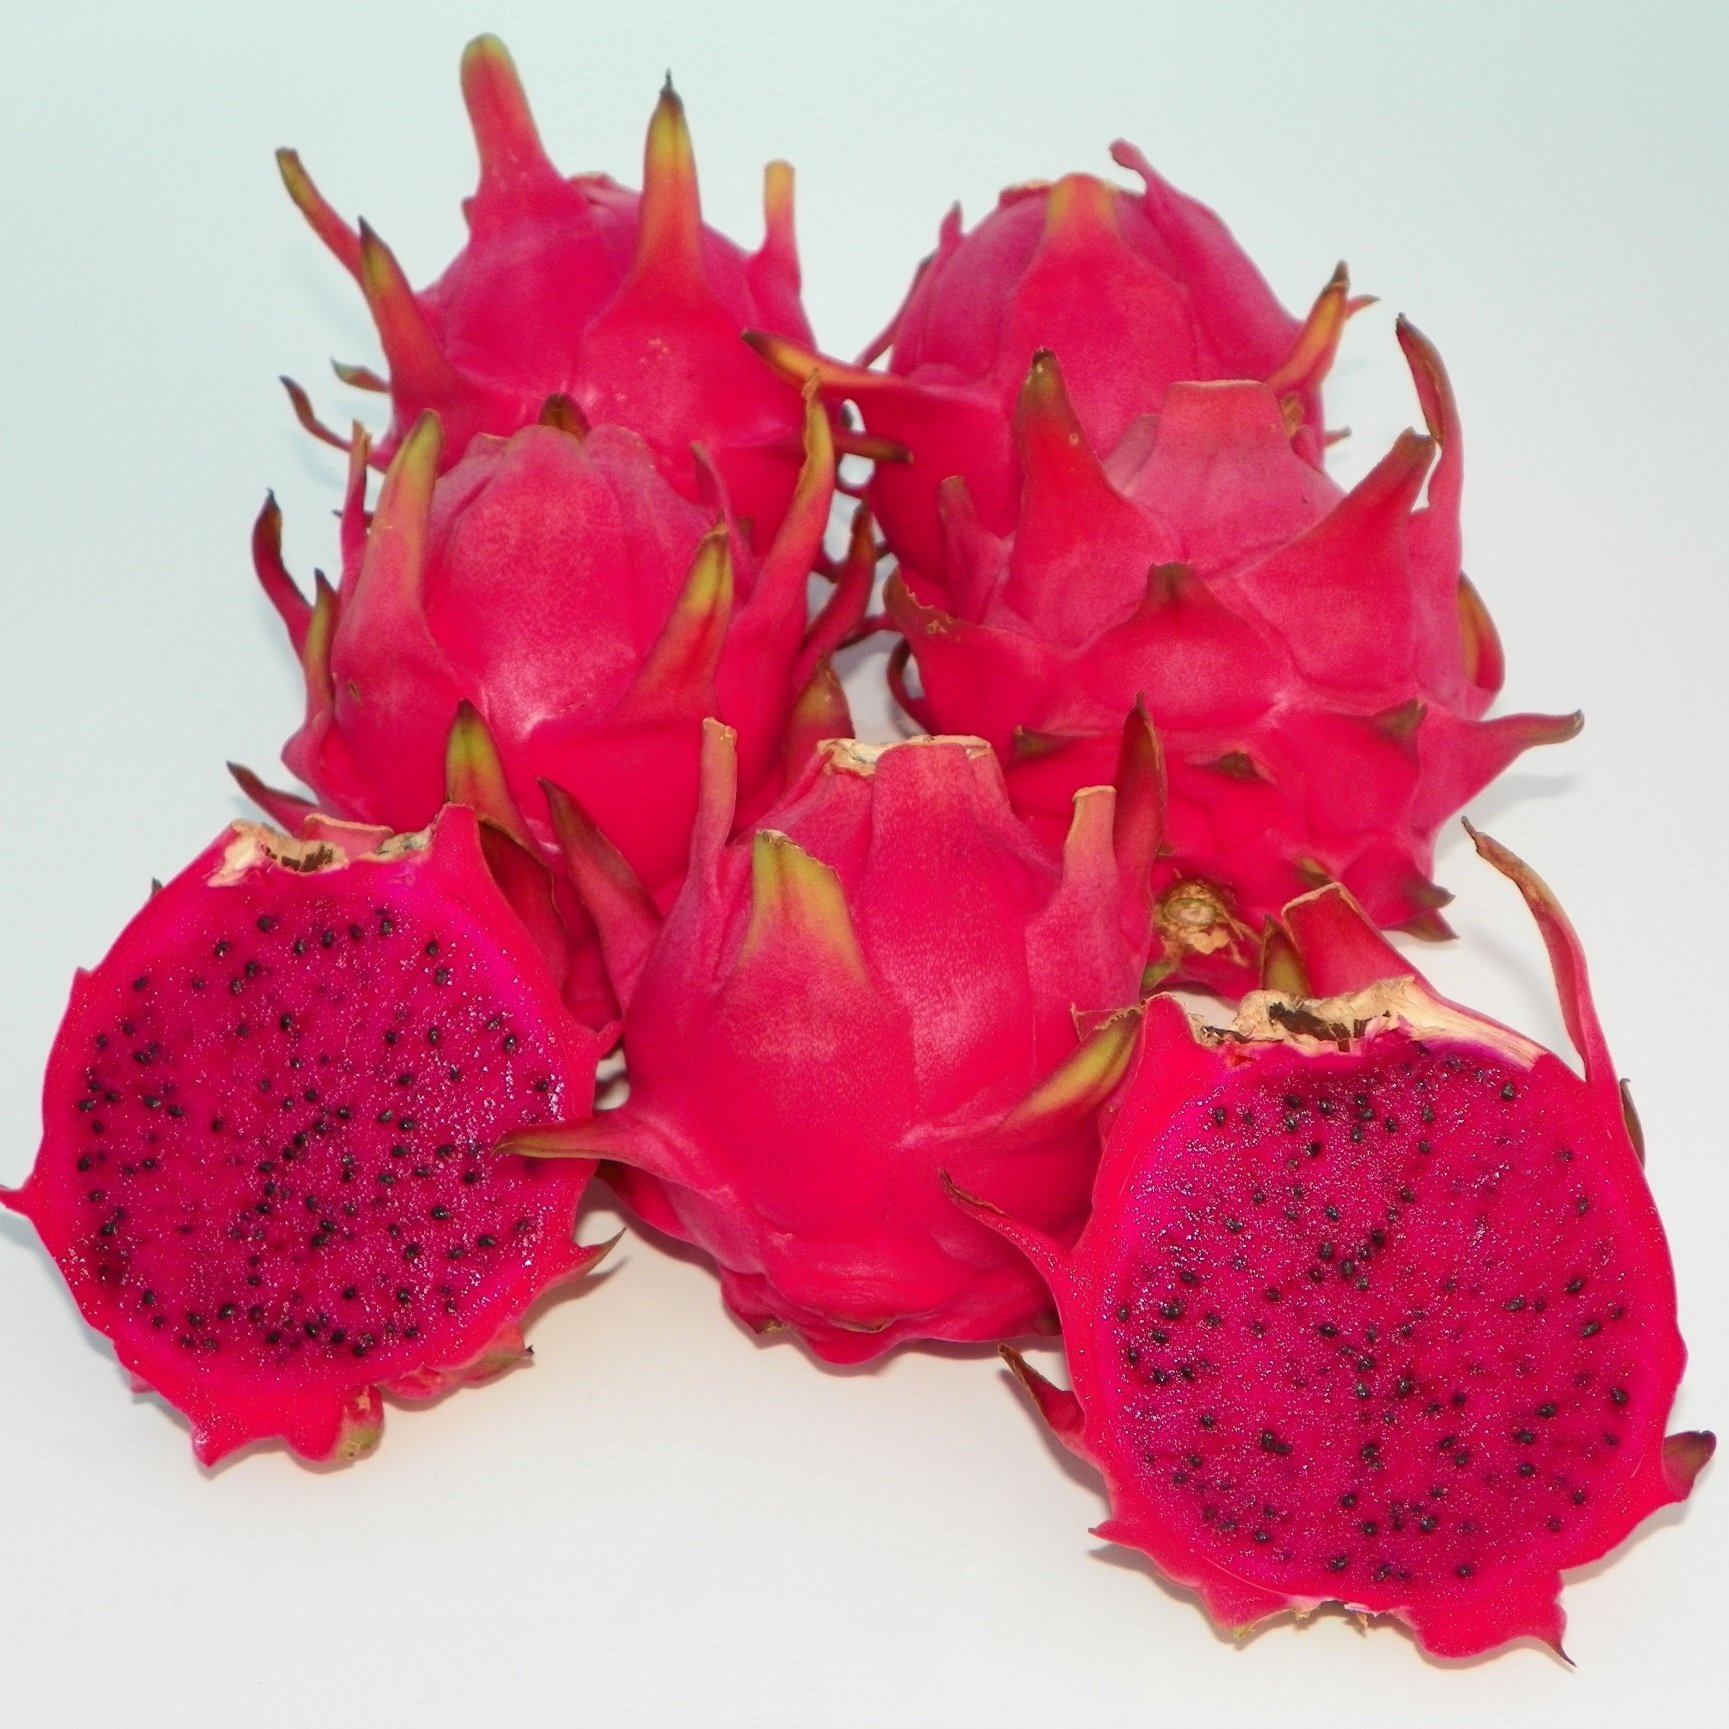 Dragon Fruit variety Natural Mystic fruit sliced